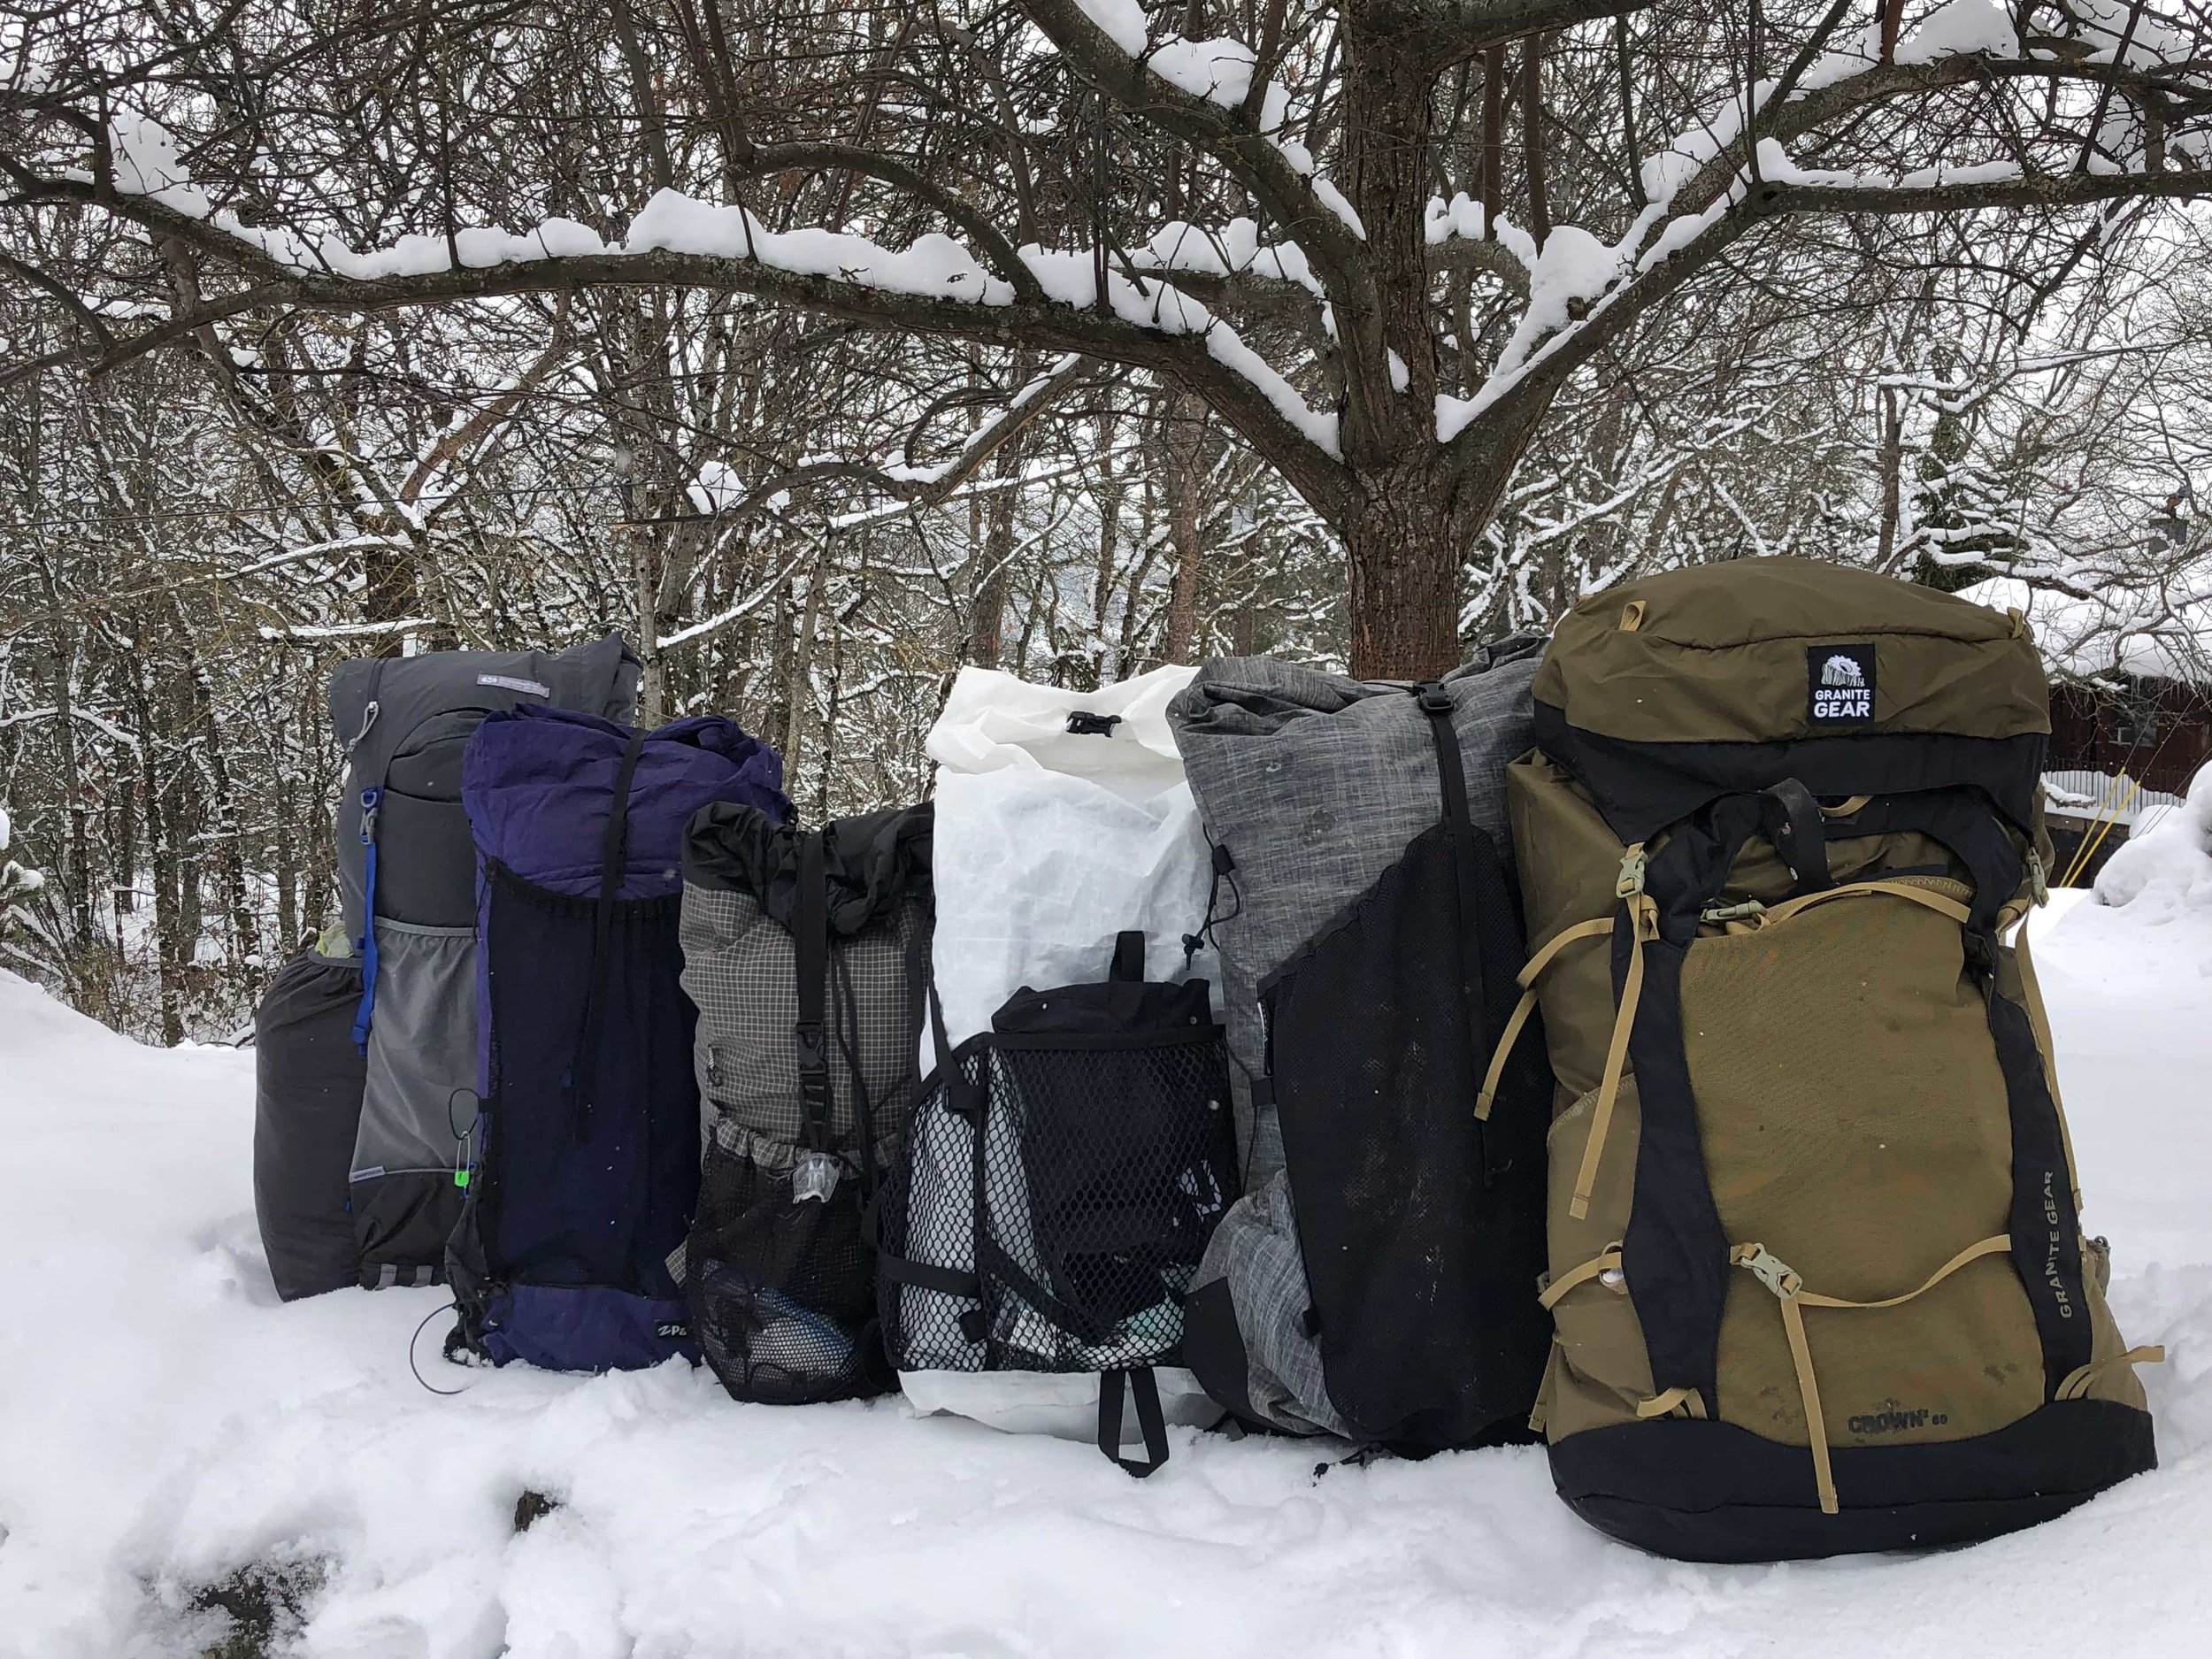 A line up of some of the packs we tested for this story.   Photo by Mike Unger.